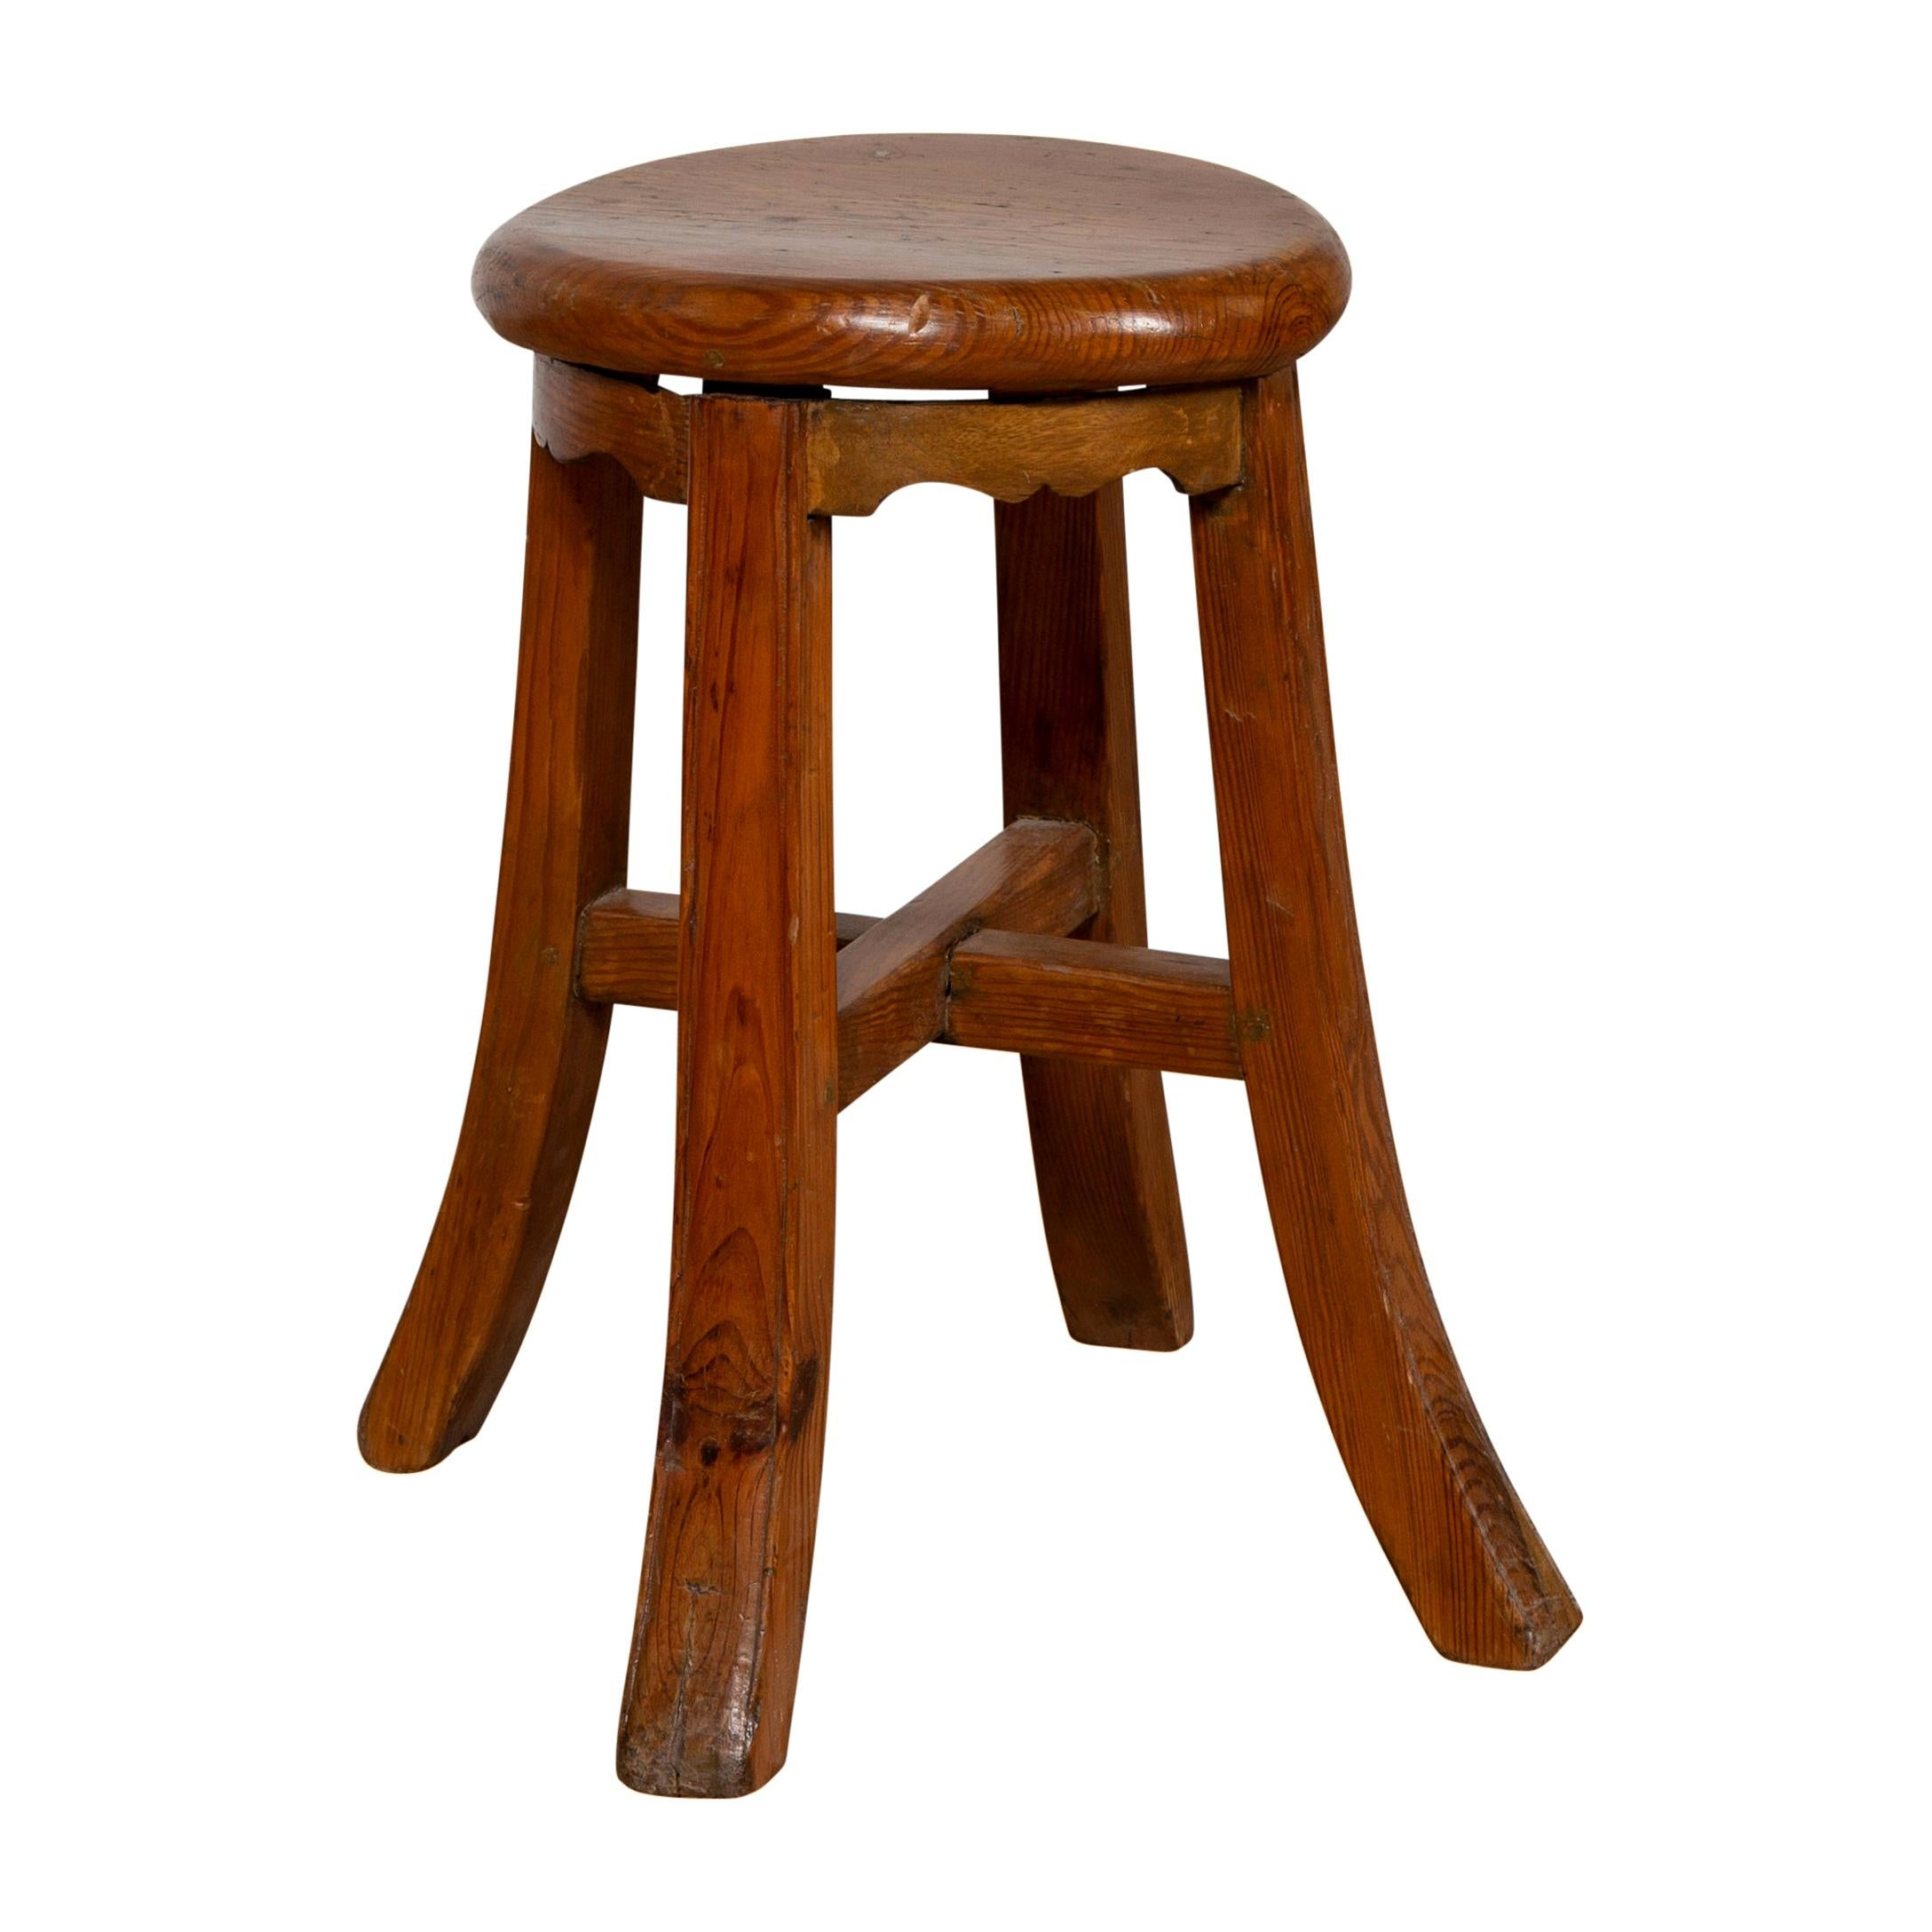 Chinese Antique Elmwood Stool with X-Form Cross Stretcher and Splaying Legs